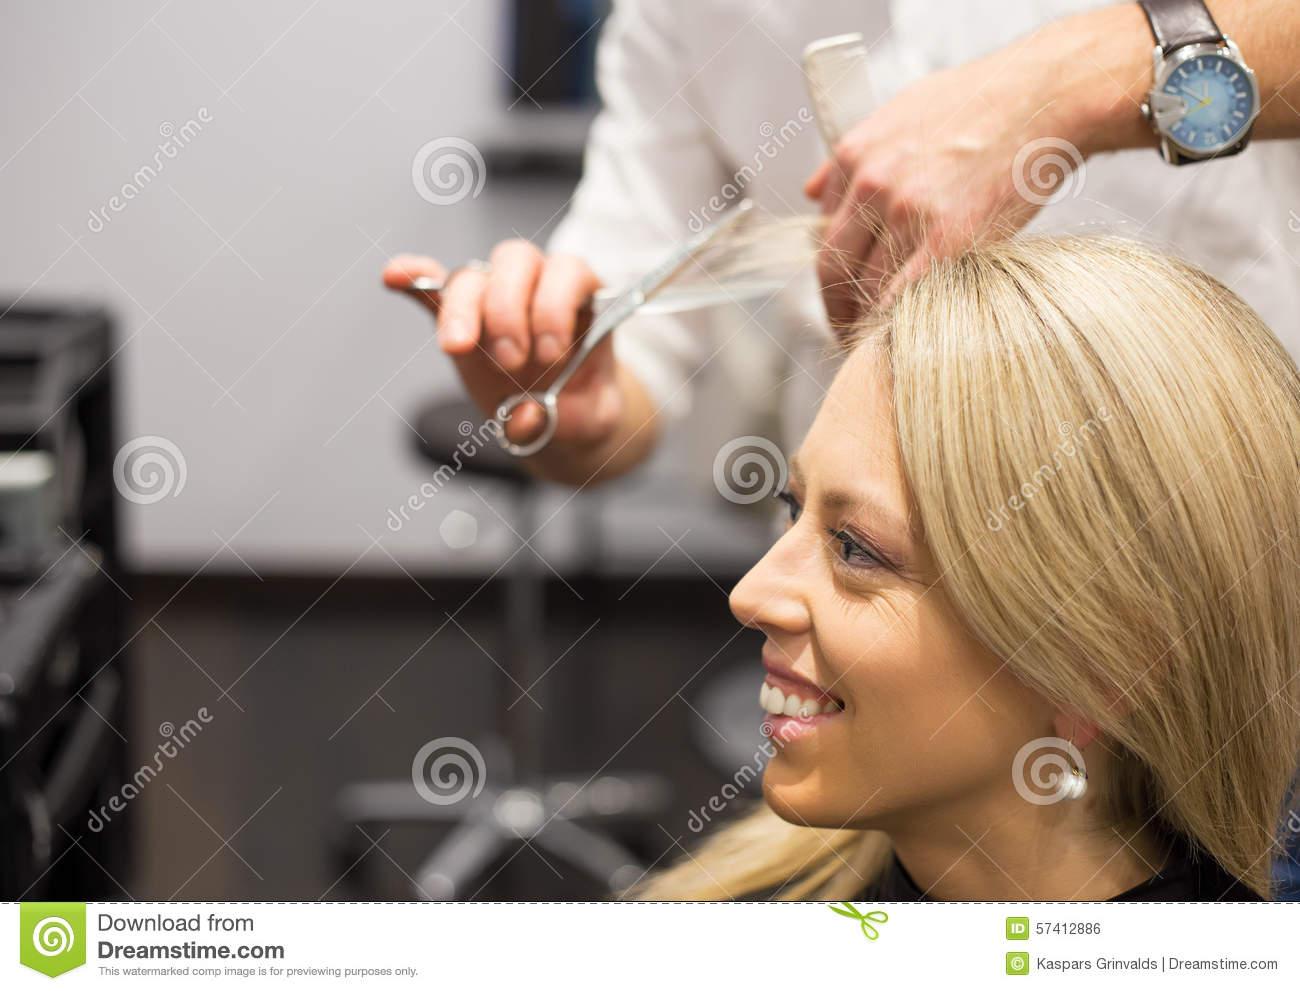 Young Woman Getting New Haircut Stock Photo Image Of Customer